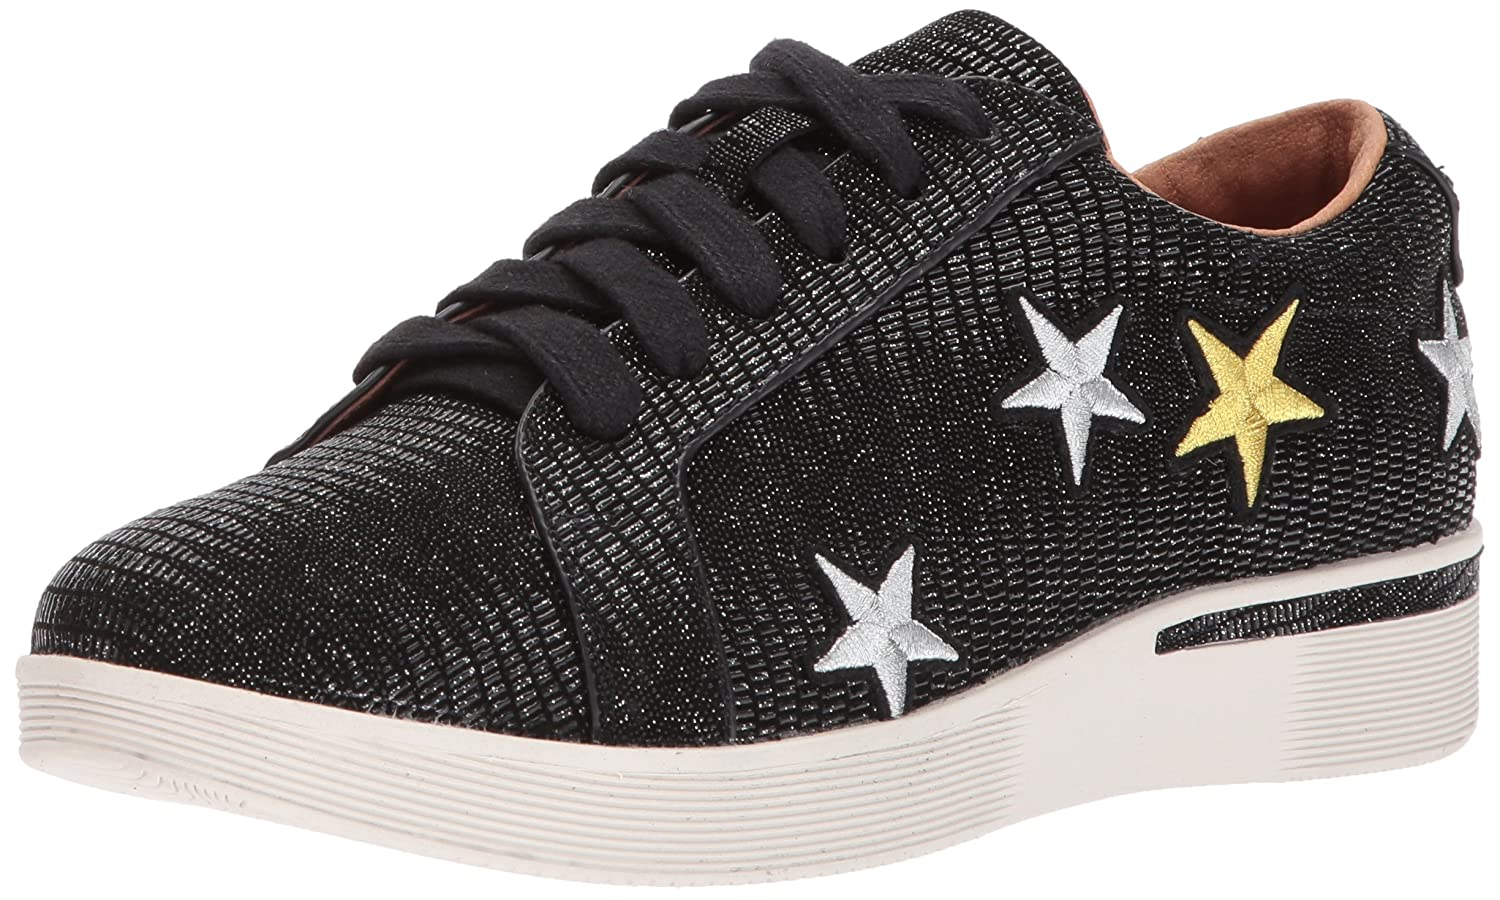 Gentle Souls by Kenneth Cole Women's Haddie Low Profile Fashion Sneaker Embossed Fashion Sneaker B0713X79T1 5 M US|Black